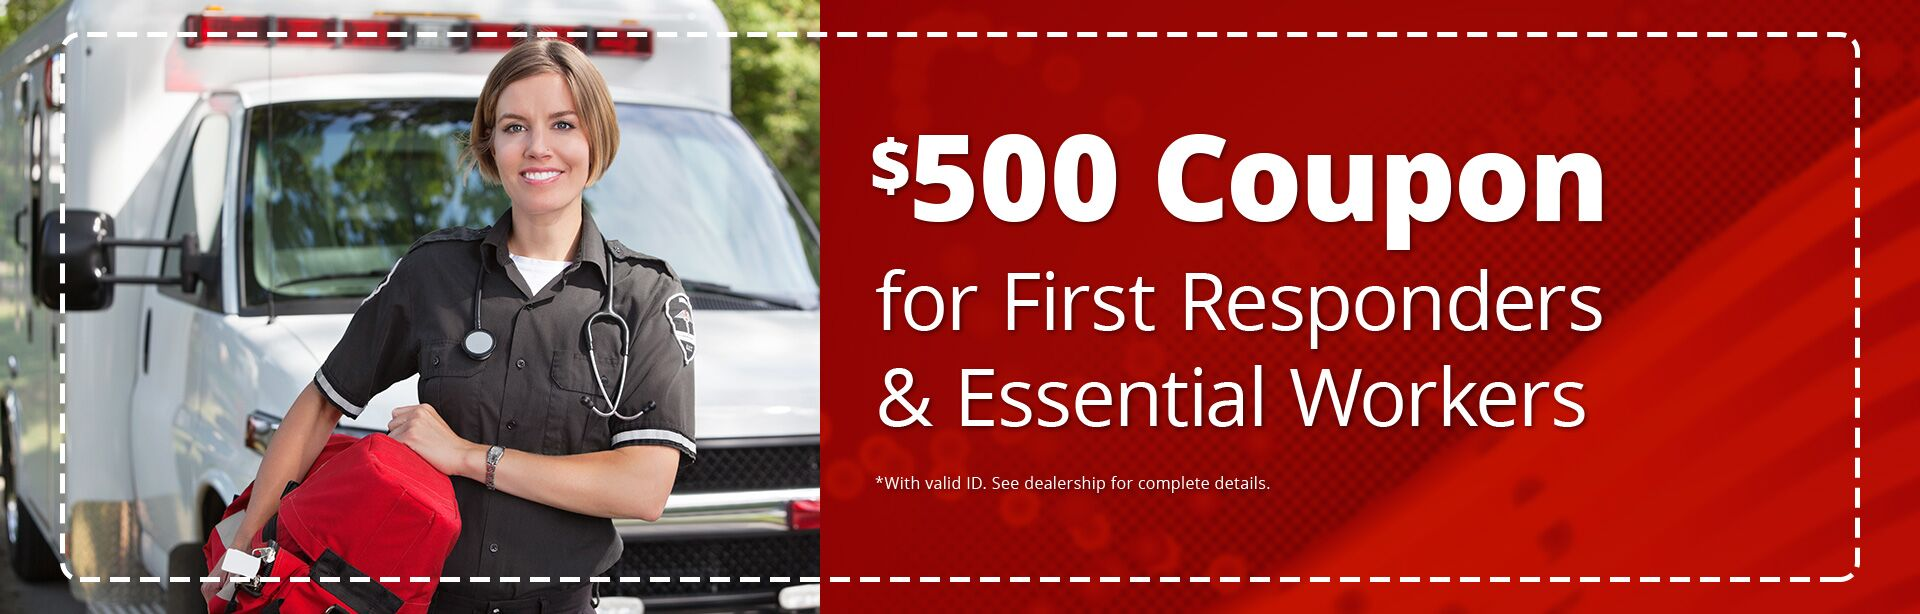 $500 for First Responders